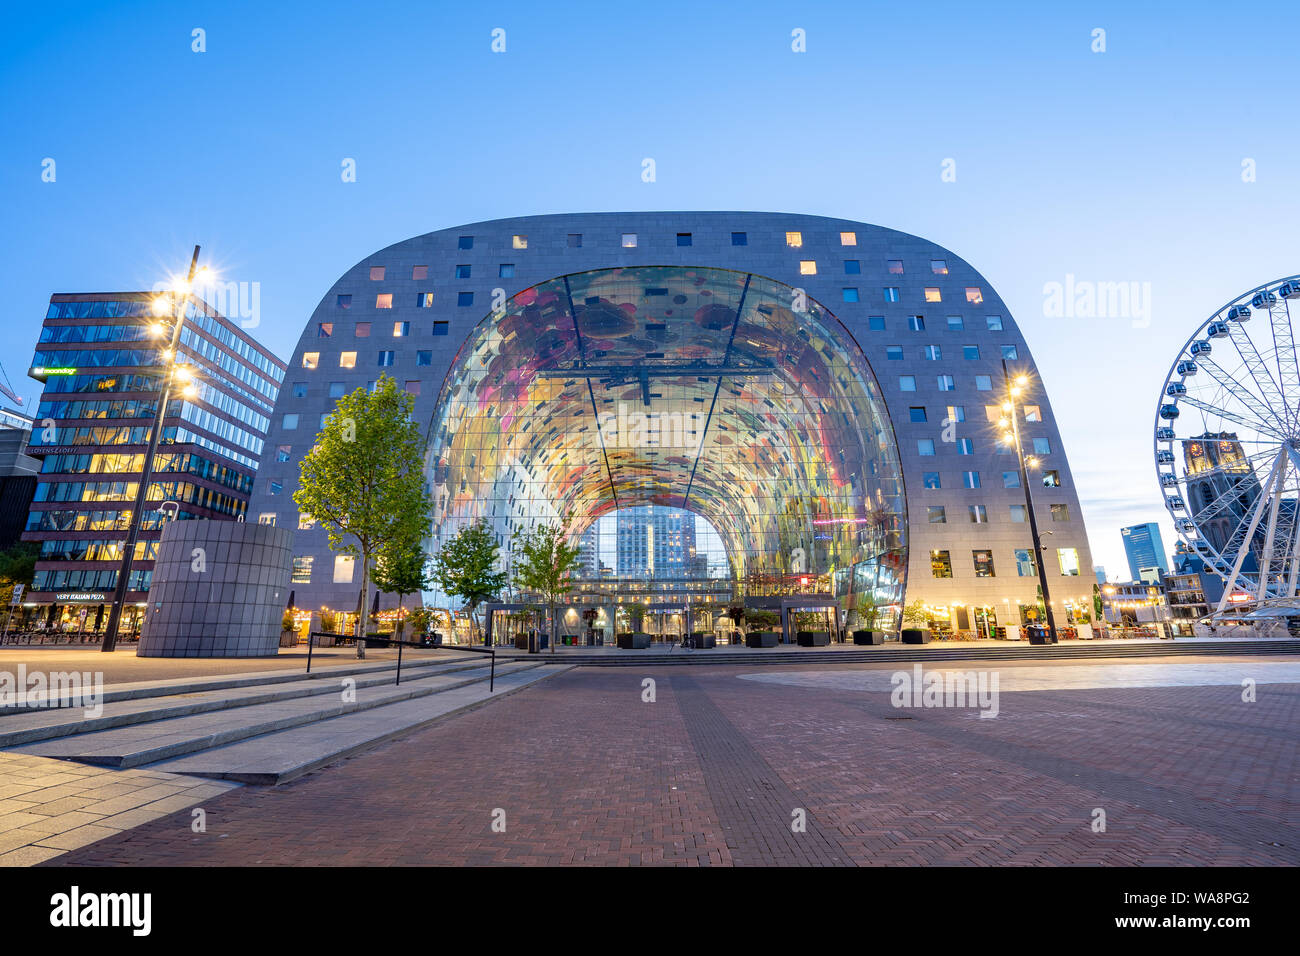 Rotterdam, Netherlands - May 13, 2019: The Markthal at night in Rotterdam city, Netherlands. Stock Photo